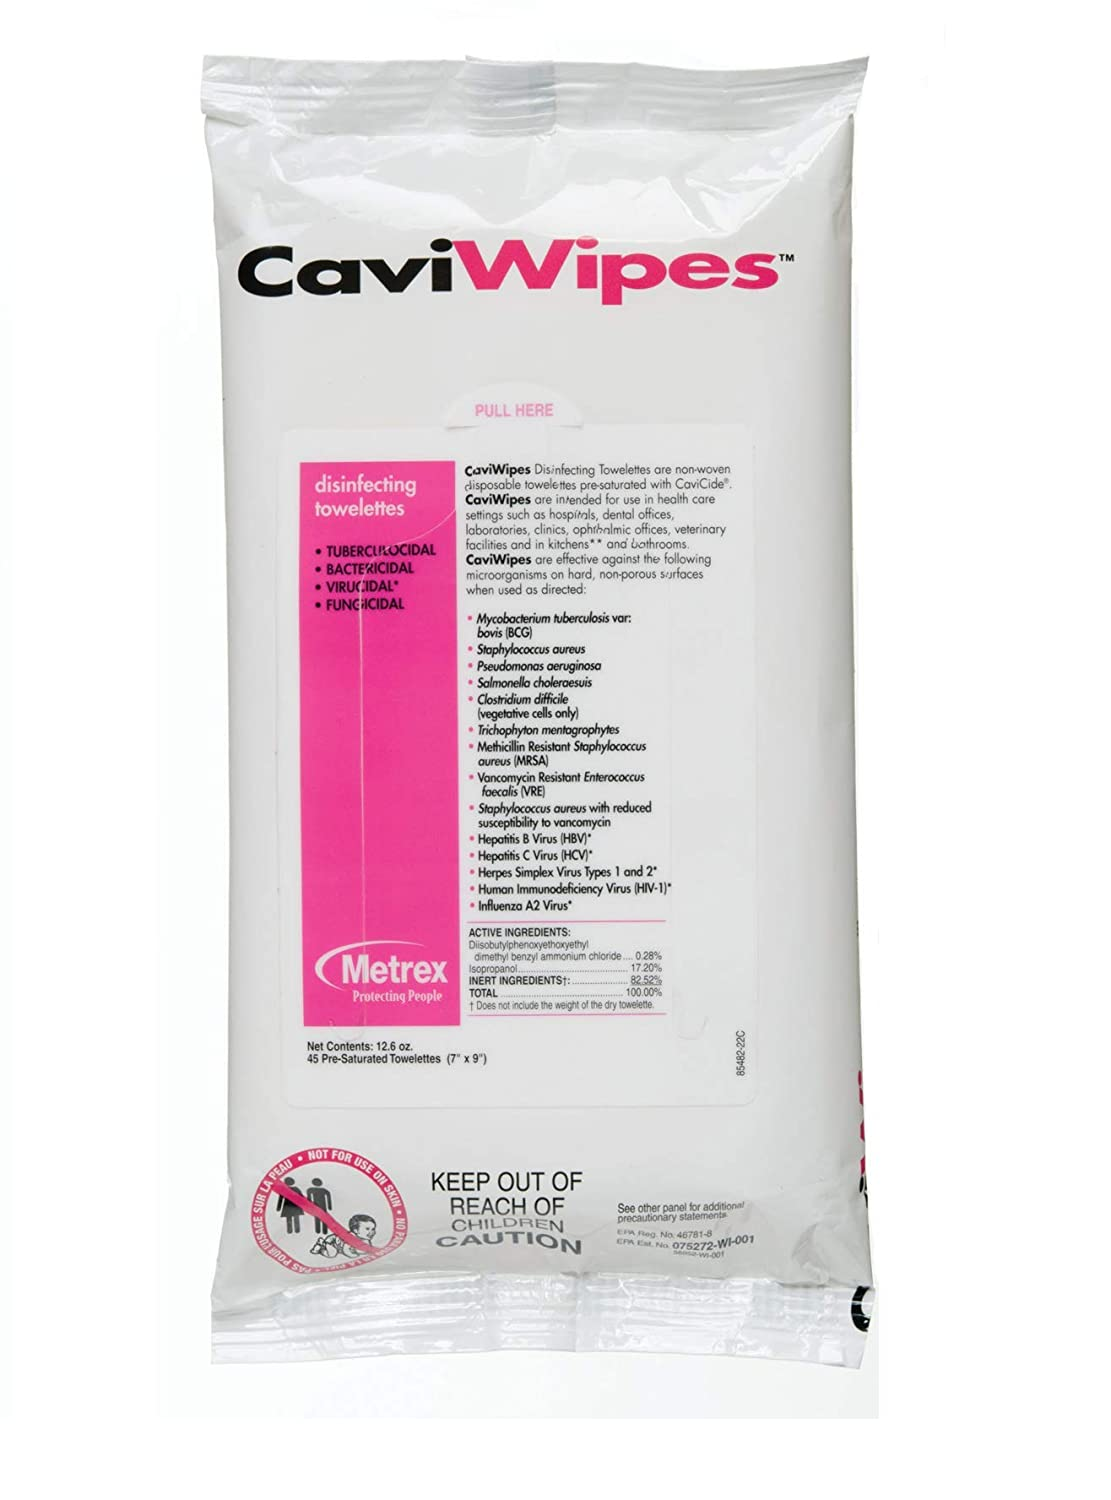 Metrex 13-1224 CaviWipes Surface Disinfectant Towelette Wipe, 7